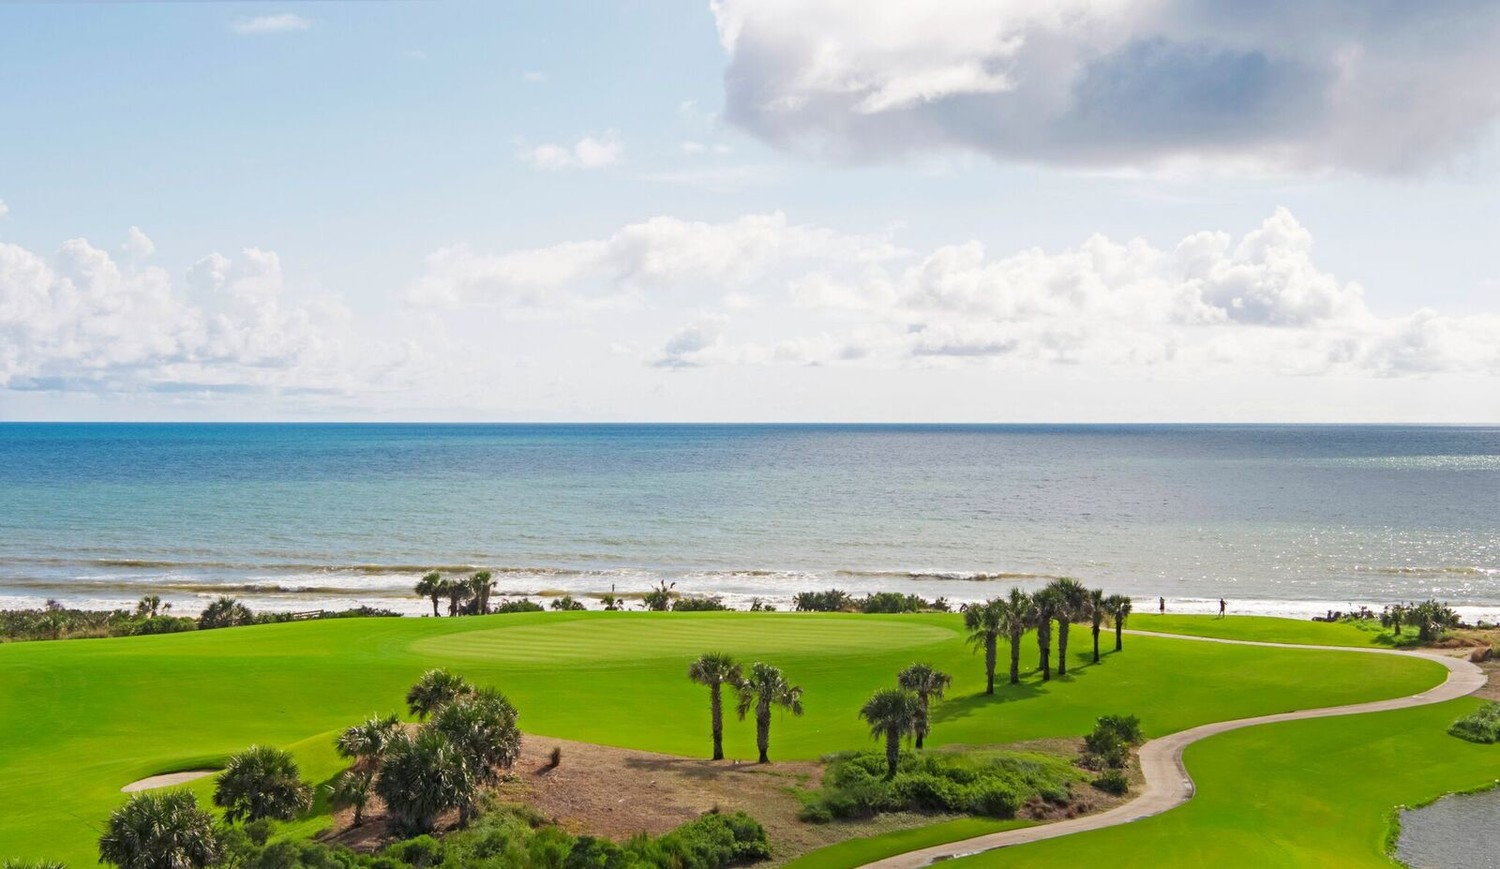 The Ocean Course at Hammock Beach Resort now features new salt-tolerant greens, fairways and rough.